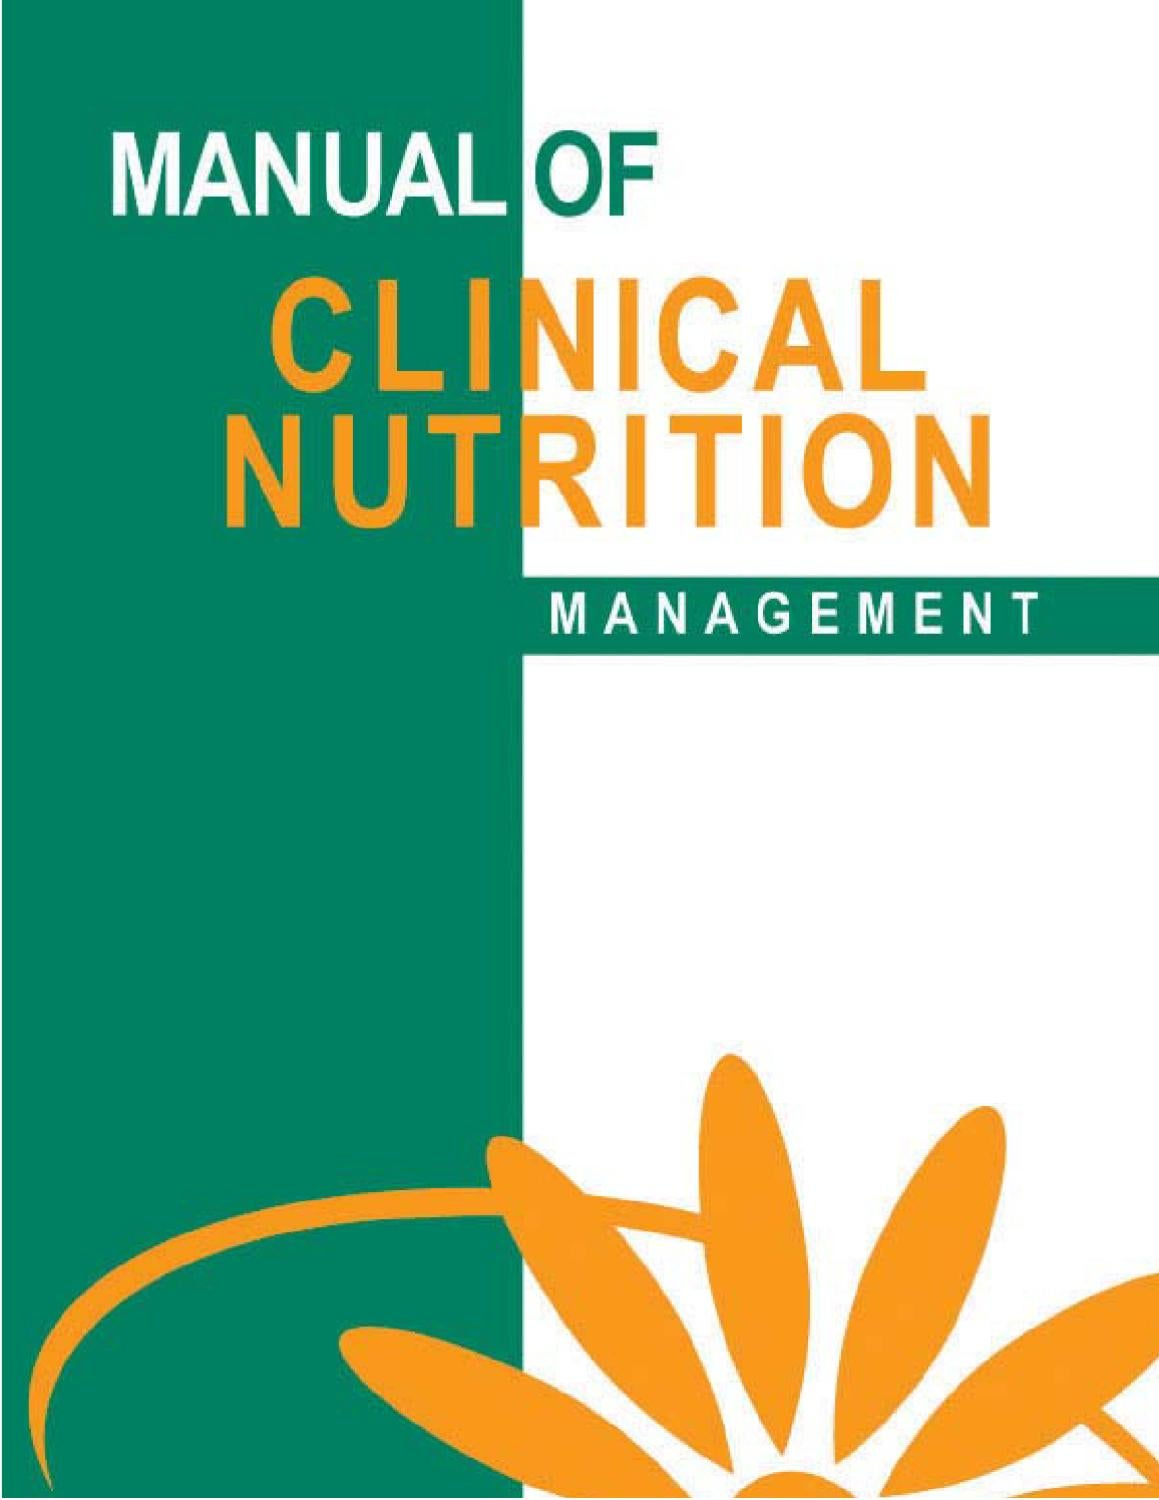 Manual of Clinical Nutrition Management by NOE GONZALEZ - issuu